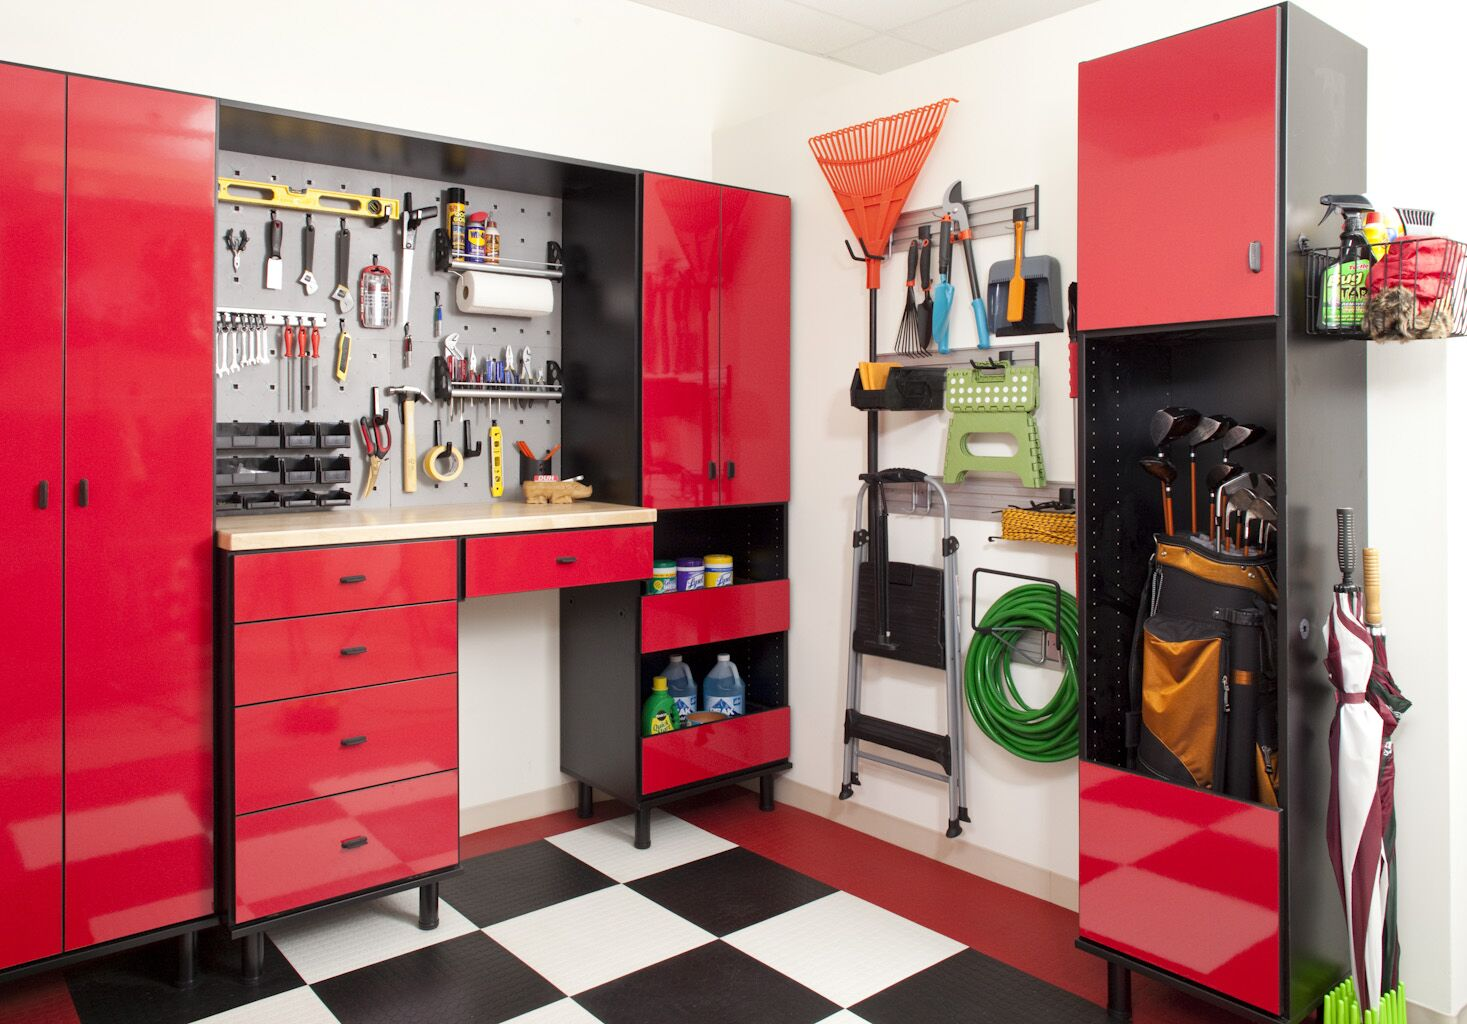 Garage organized with storage system